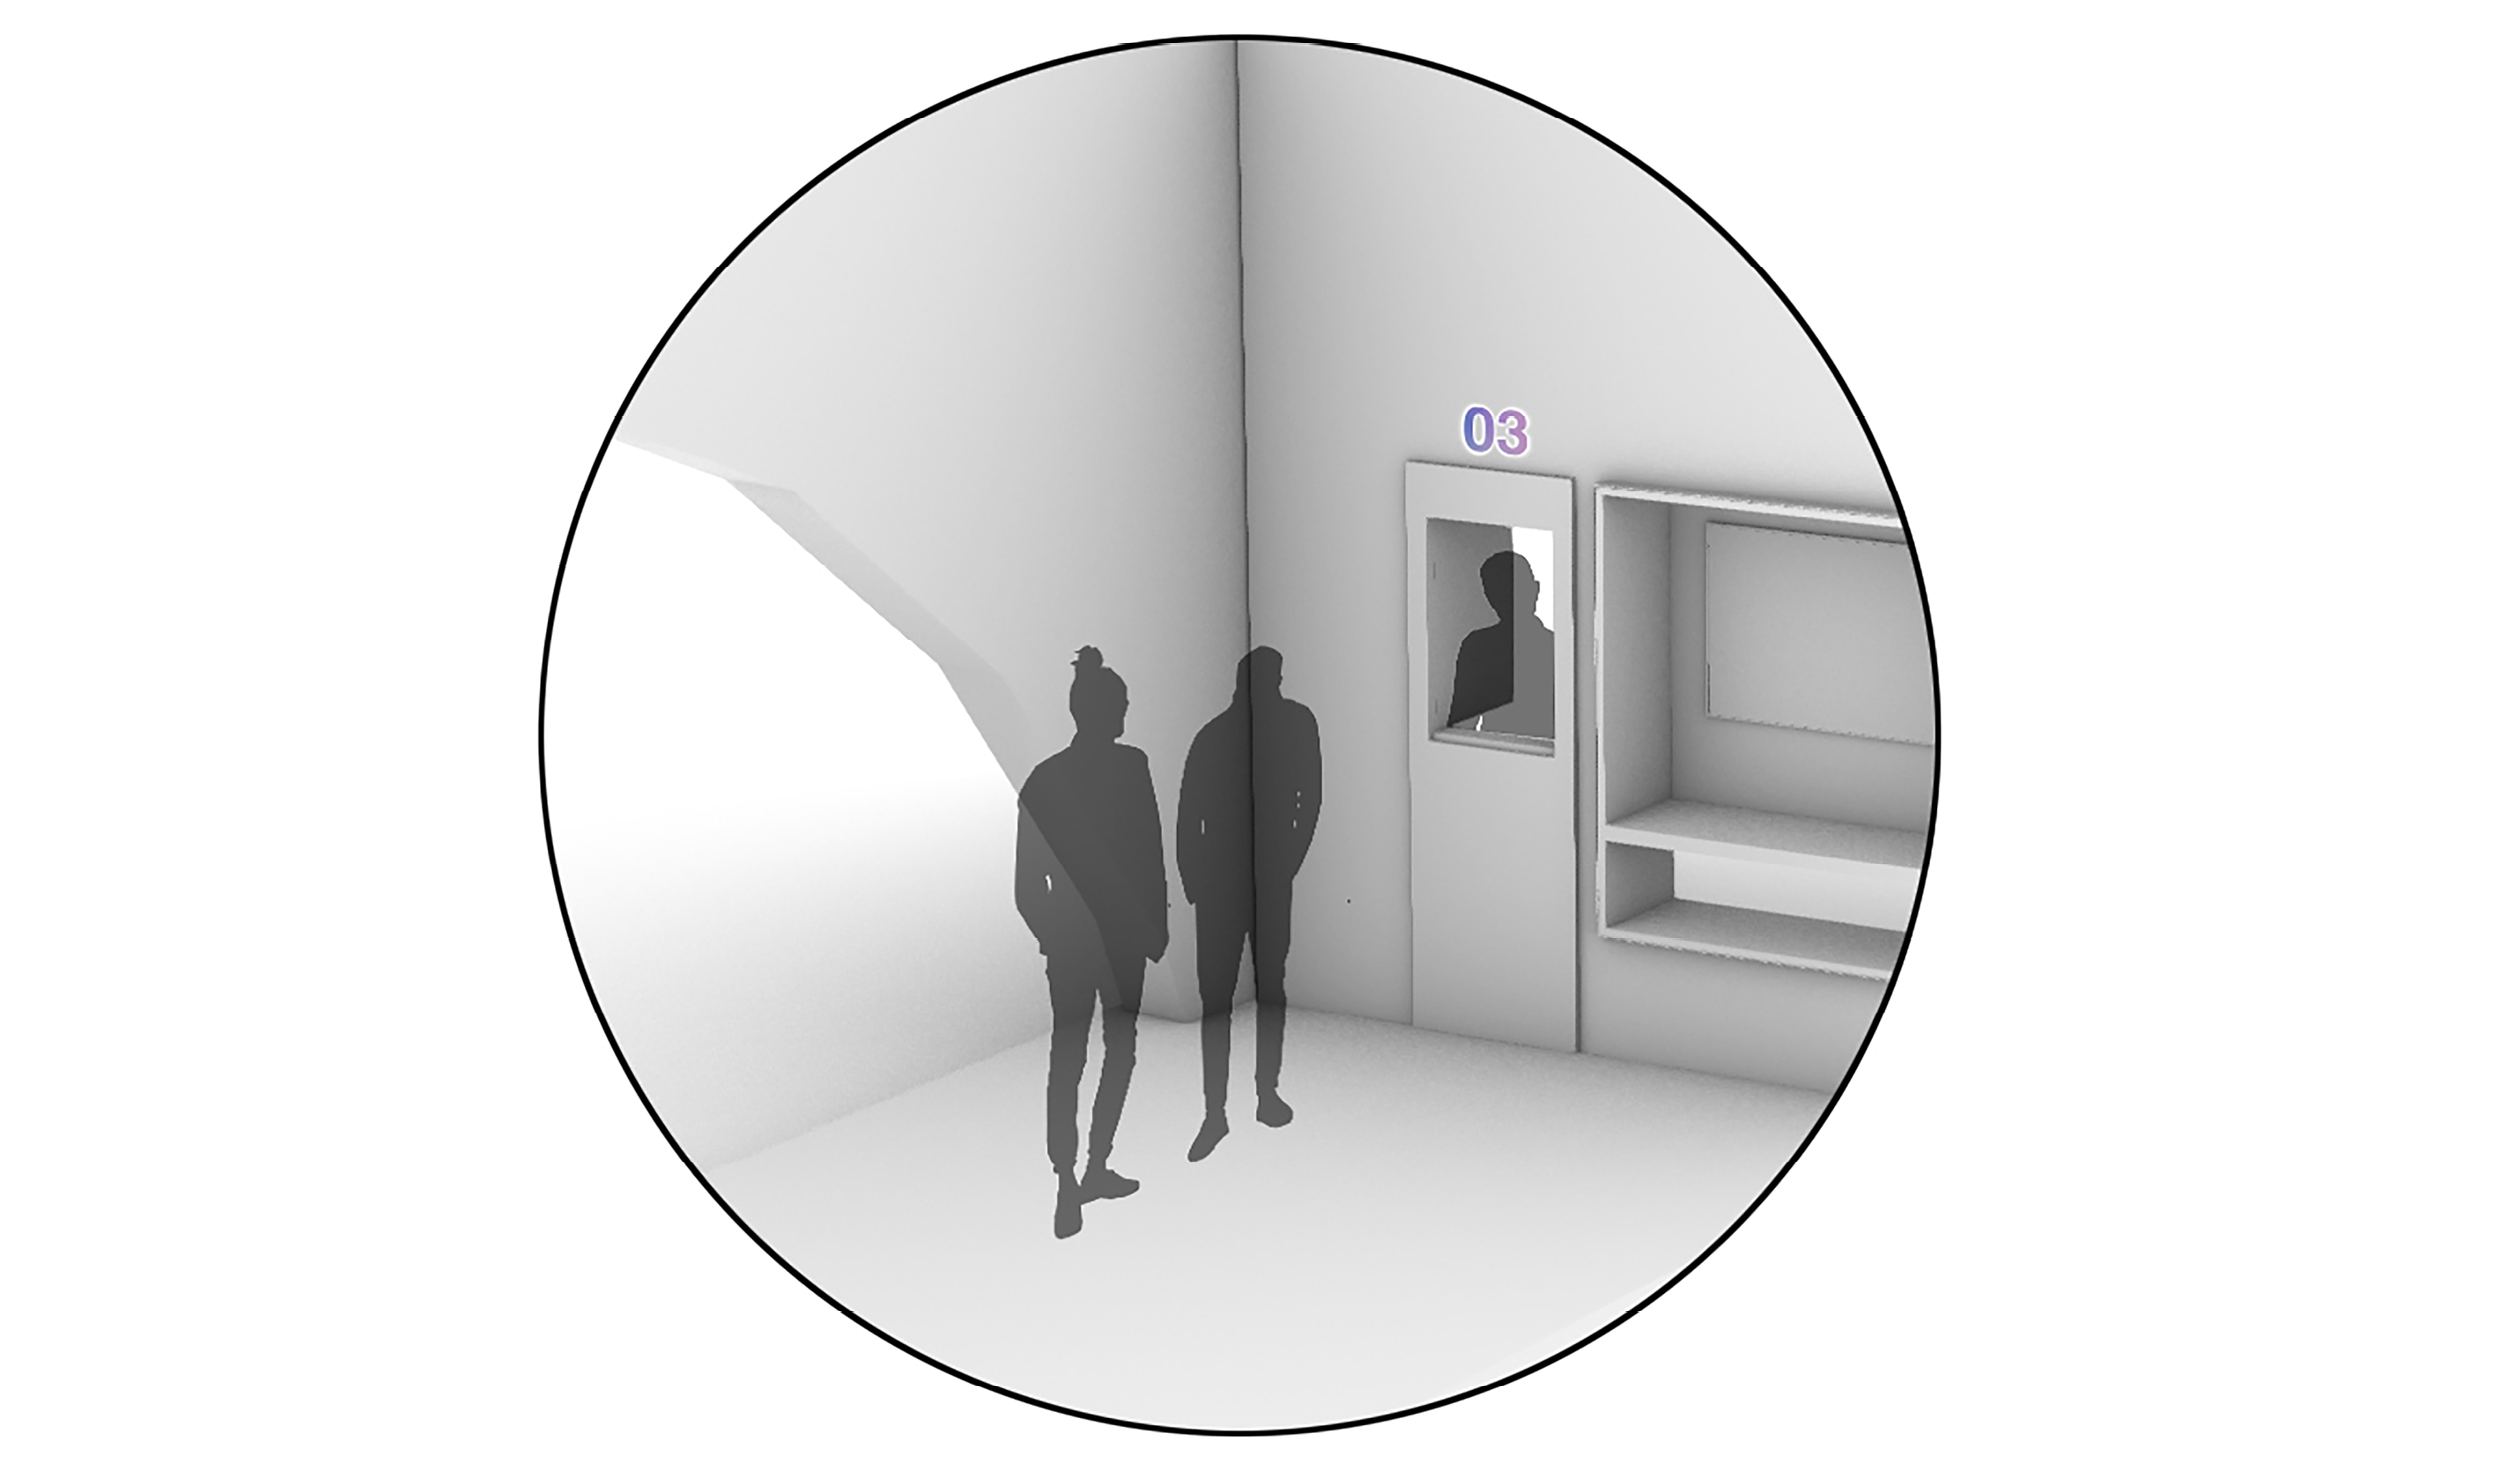 diagram of people waiting at a small pickup window facing a sidewalk